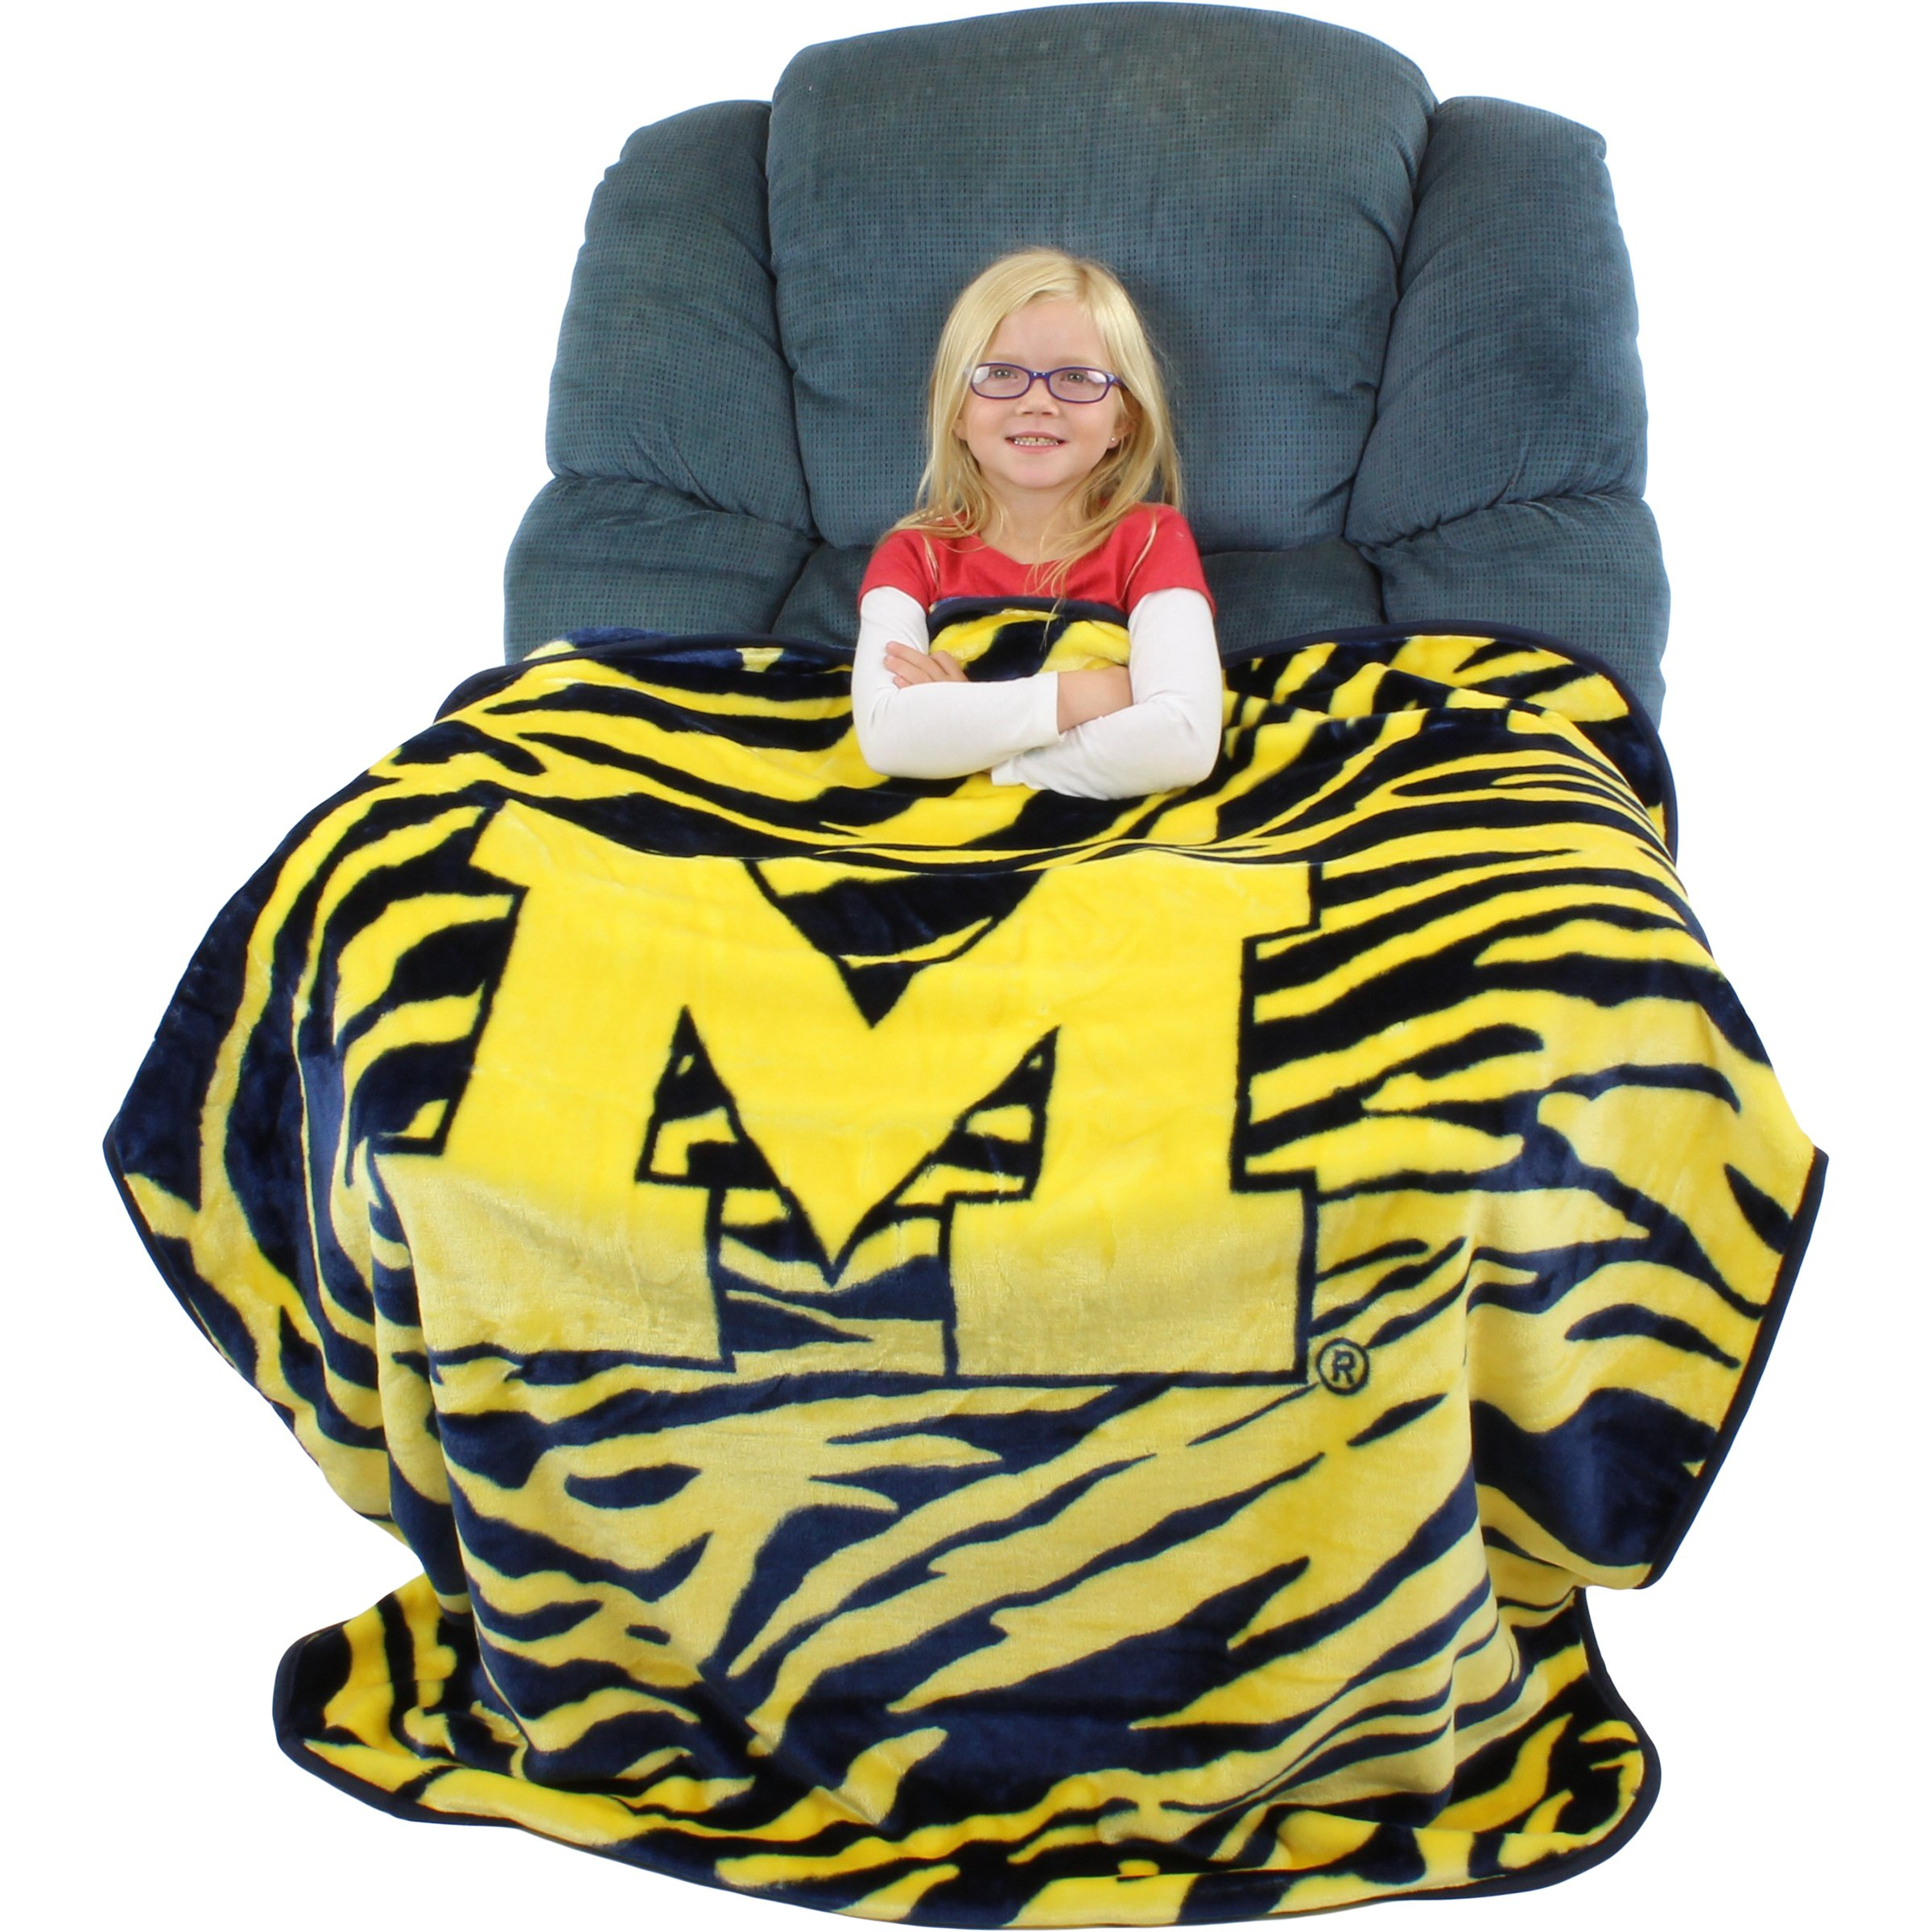 College Covers Raschel Throw Blanket, 50'' x 60'', Michigan Wolverines by College Covers